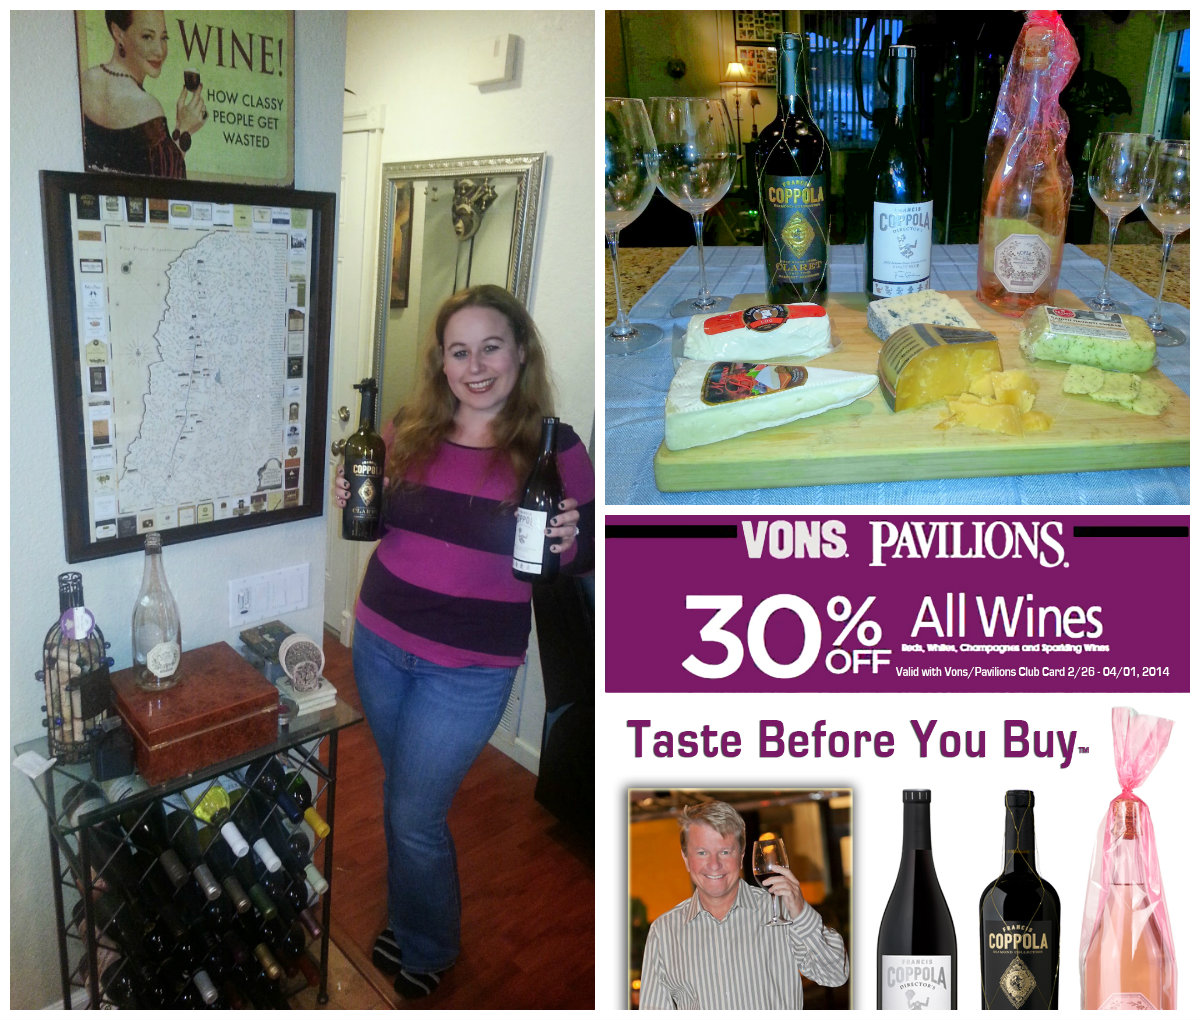 Francis ford coppola wines, fancy cheeses, peter dills, vons, pavilions